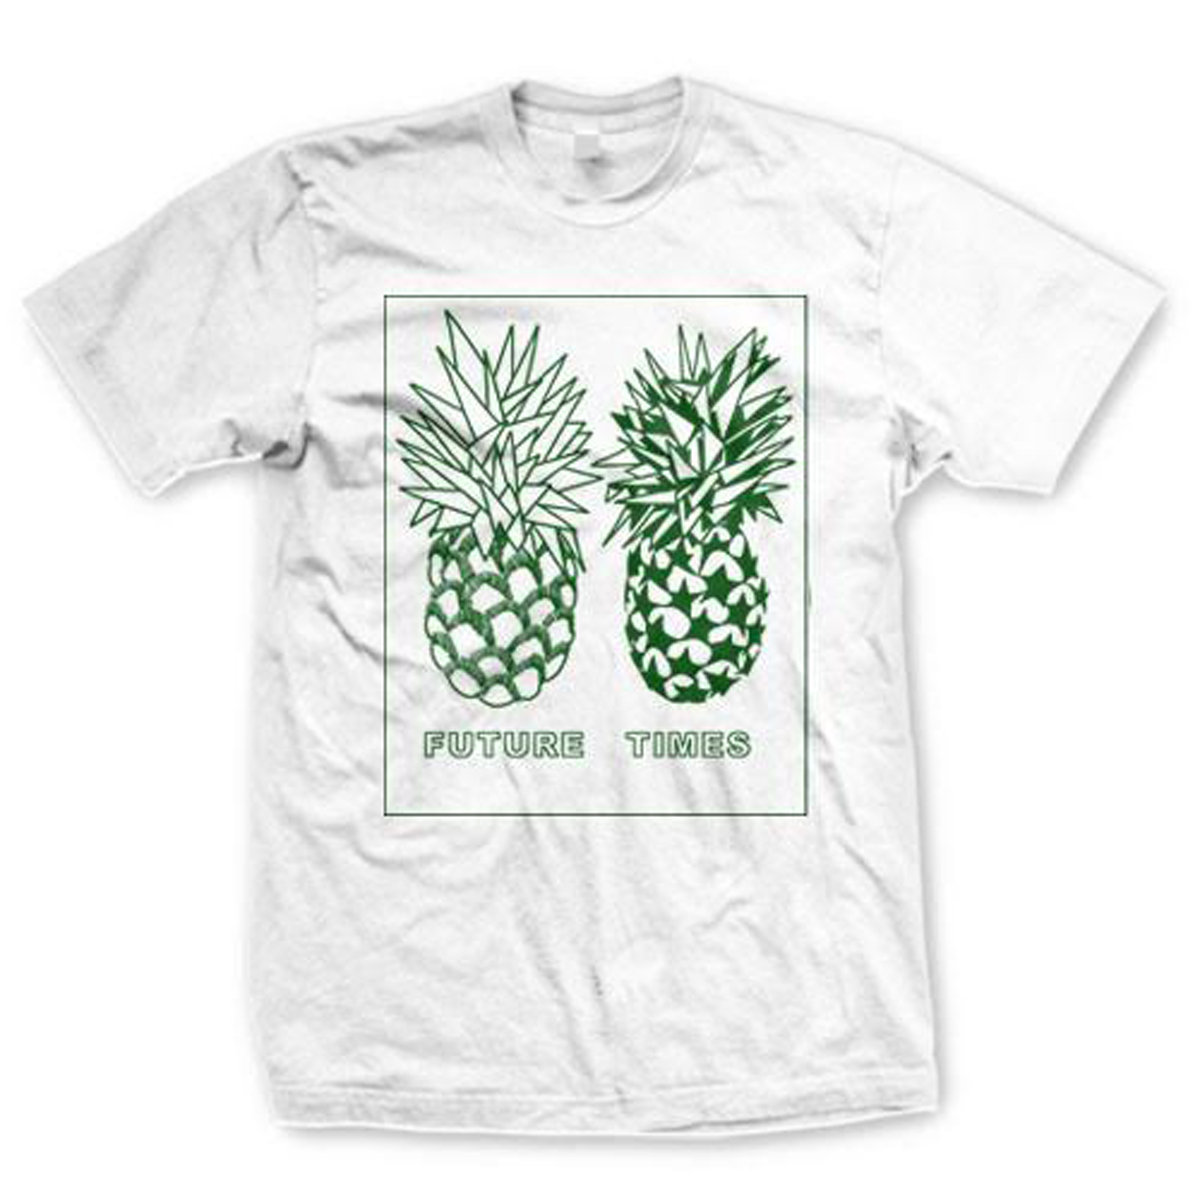 e61865a30aa9 T-Shirt/Apparel. FUTURE TIMES PINEAPPLE TEE - WHITE main photo